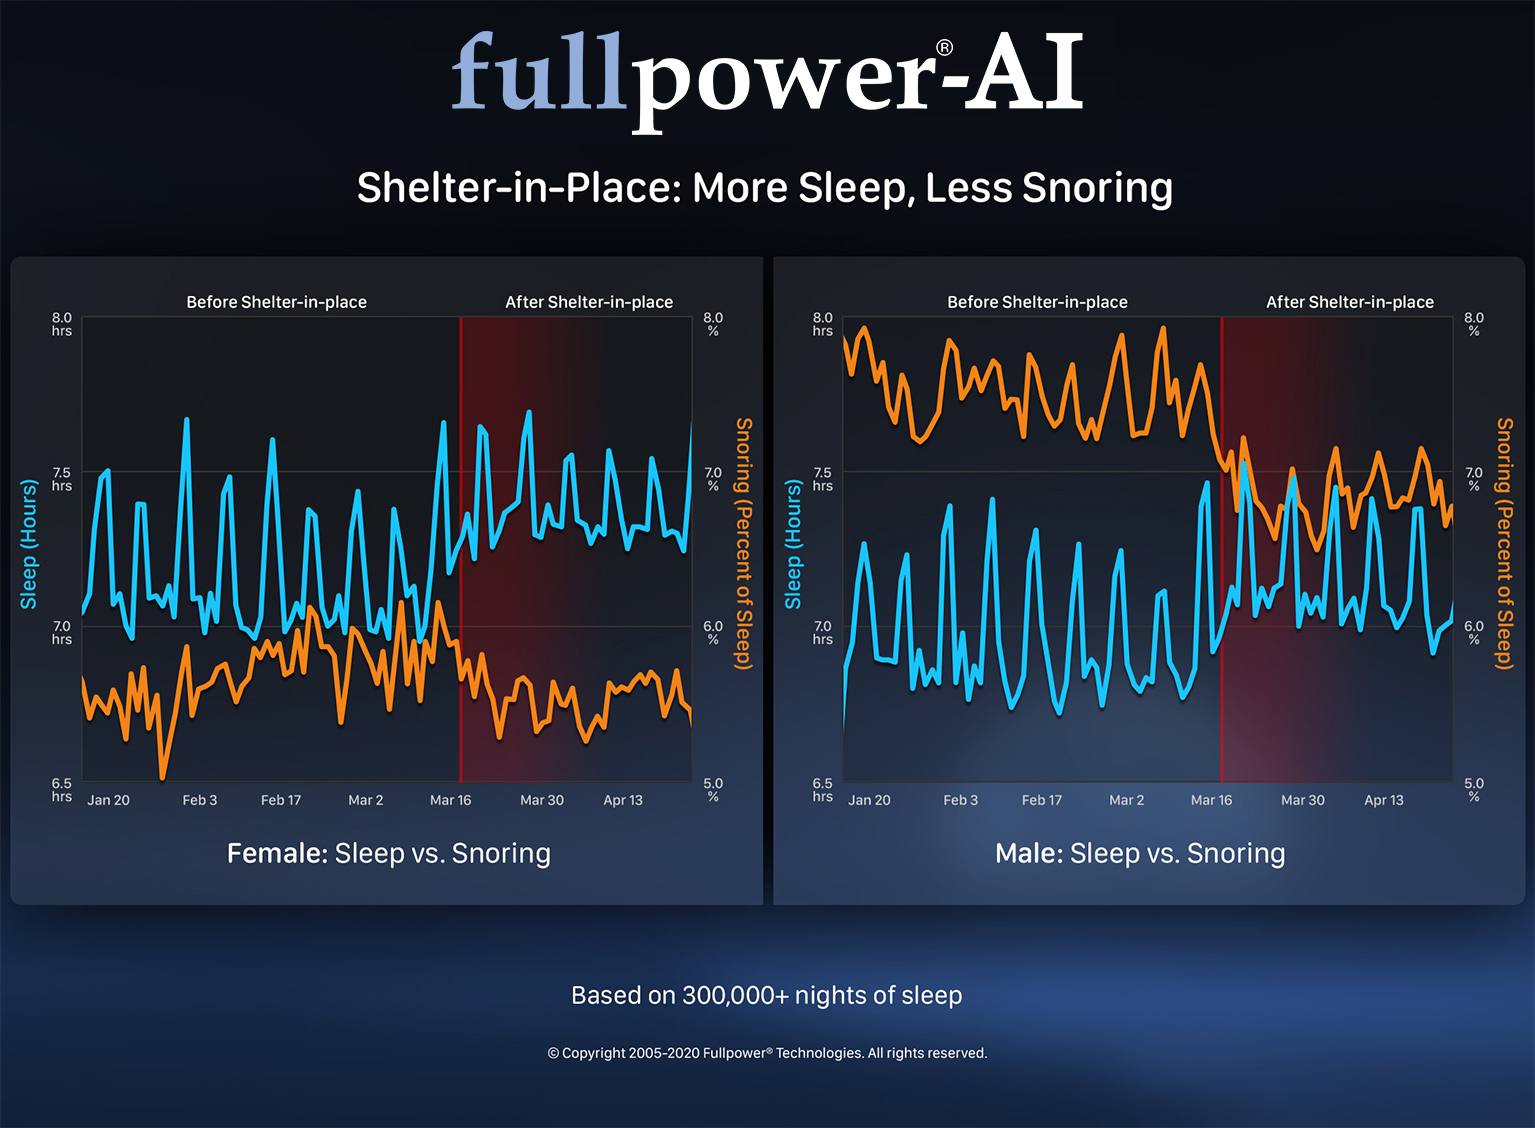 Shelter-in-Place: More Sleep, Less Snoring